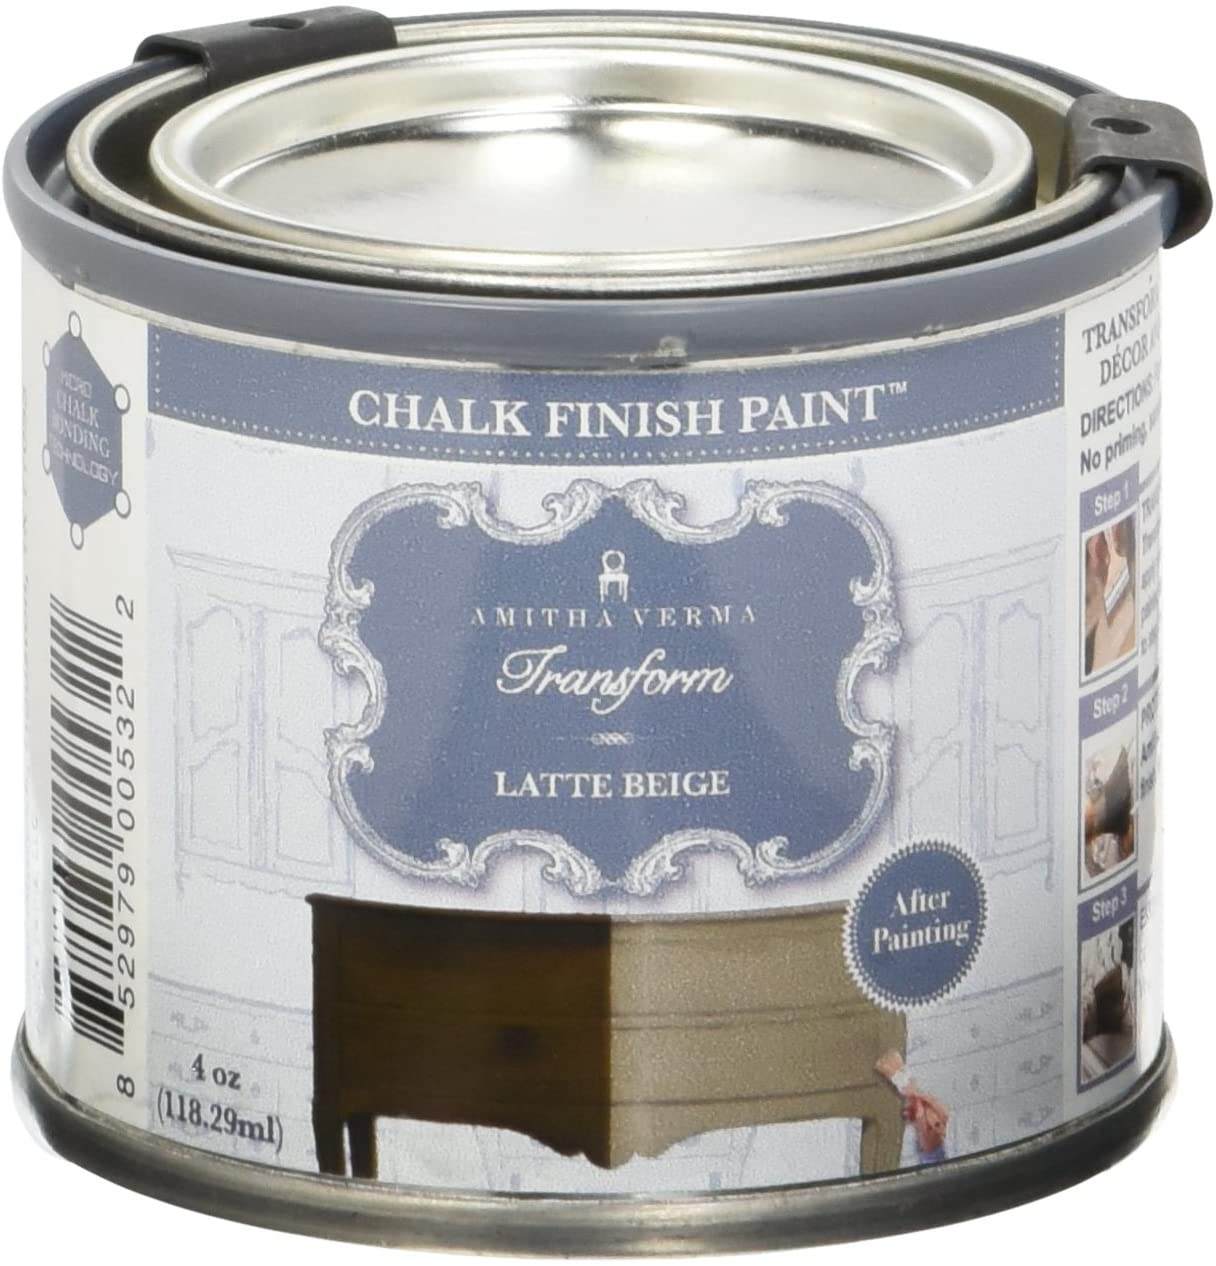 Amitha Verma Chalk Finish Paint, No Prep, One Coat, Fast Drying | DIY Makeover for Cabinets, Furniture & More, 4 Ounce, (Latte Beige)